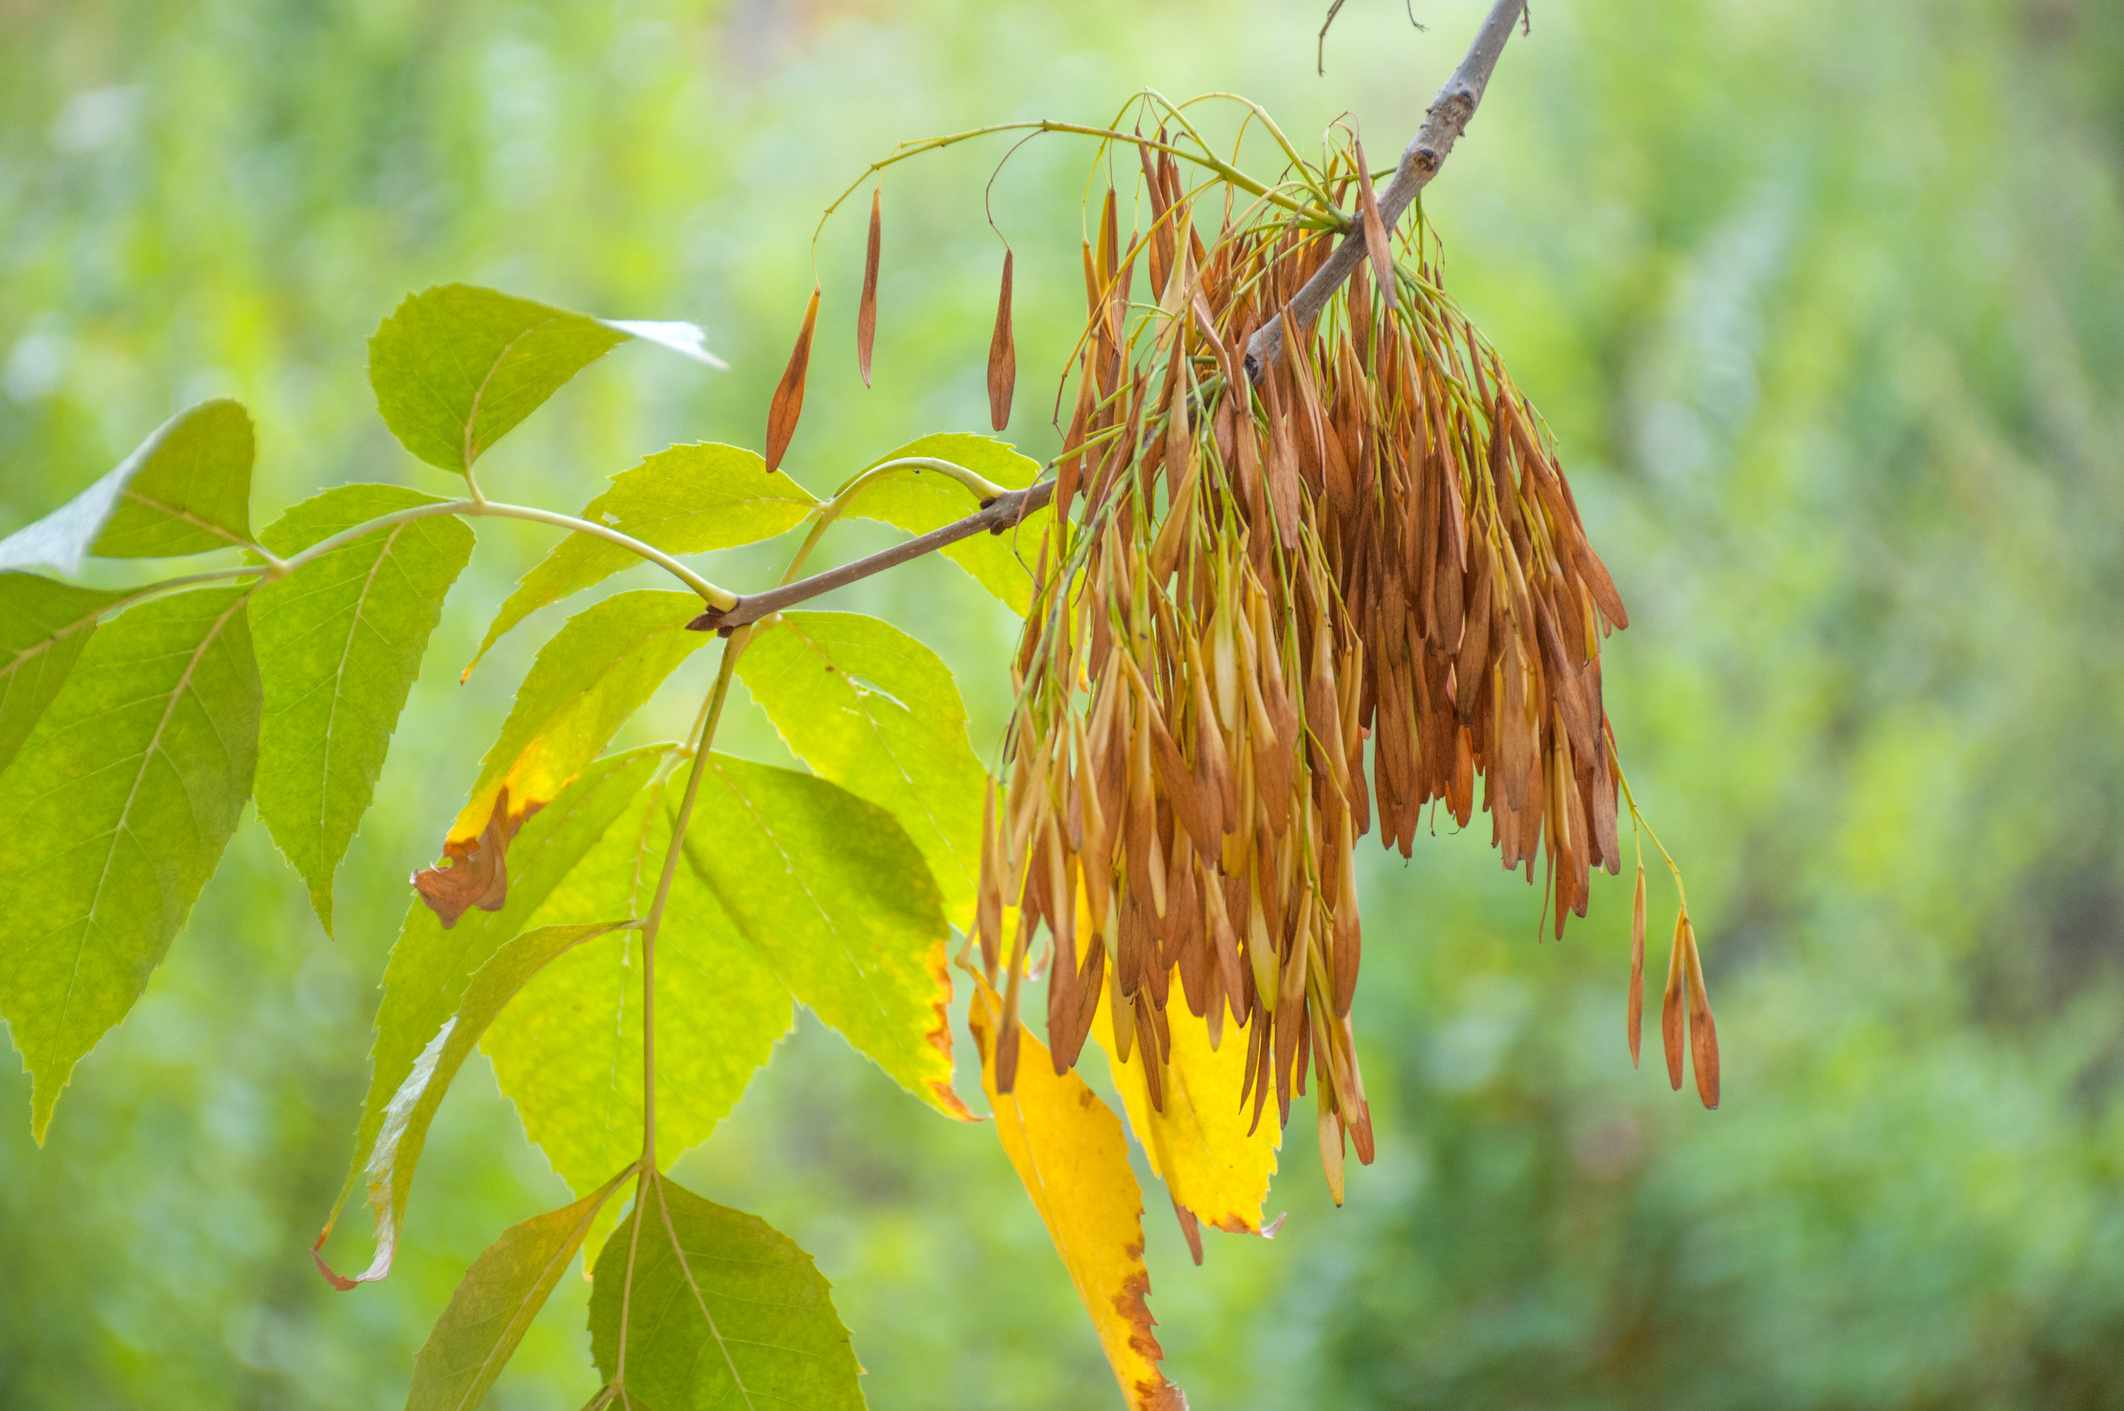 Green leaves and seed pods on an Ash tree.